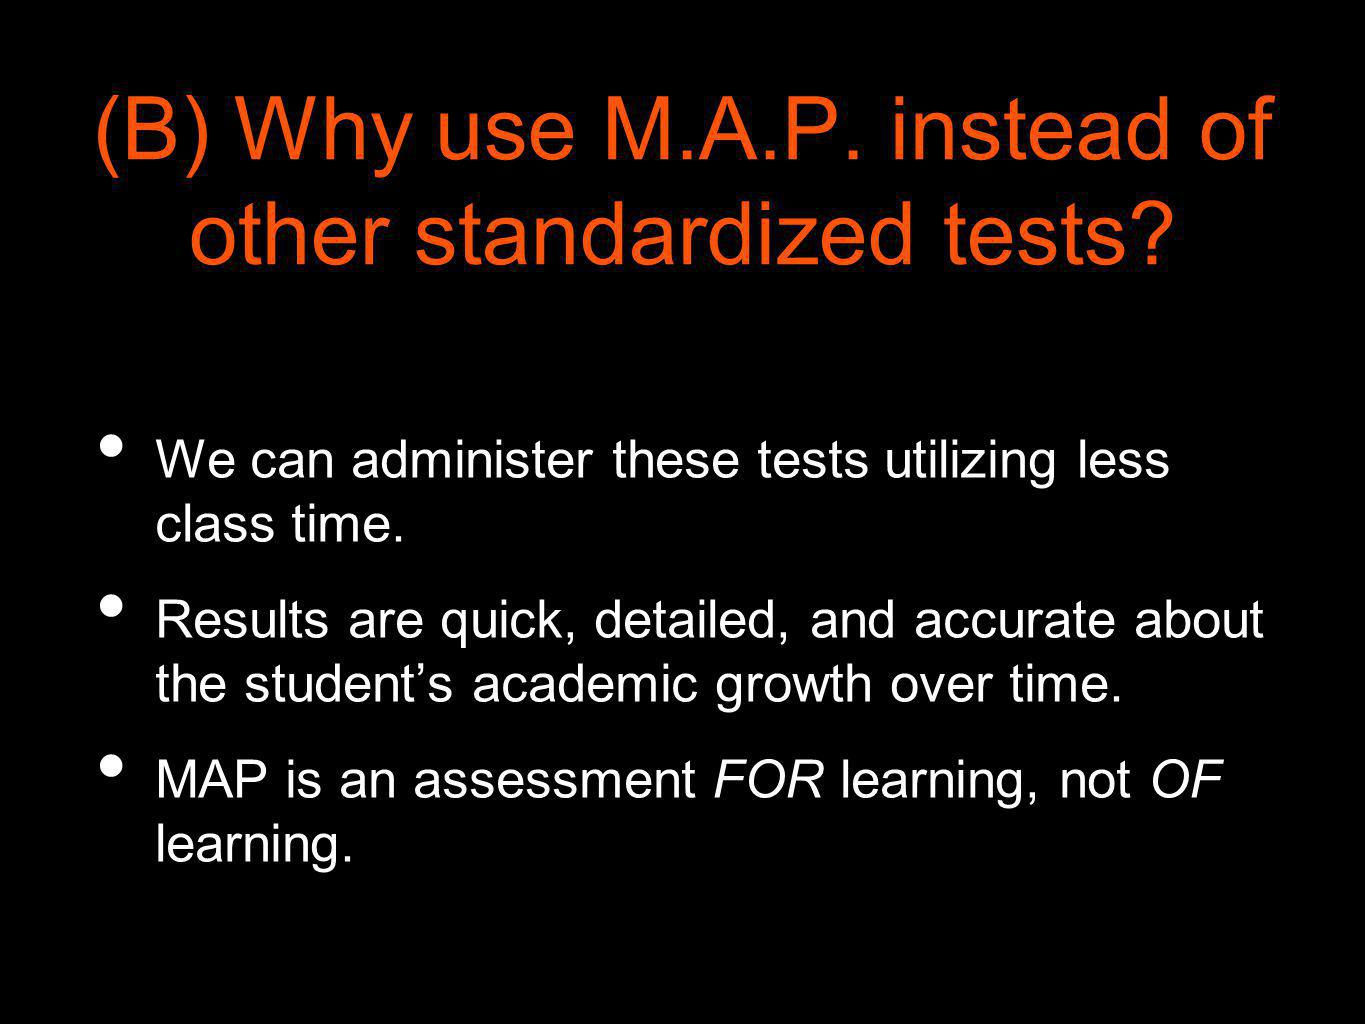 (B) Why use M.A.P. instead of other standardized tests